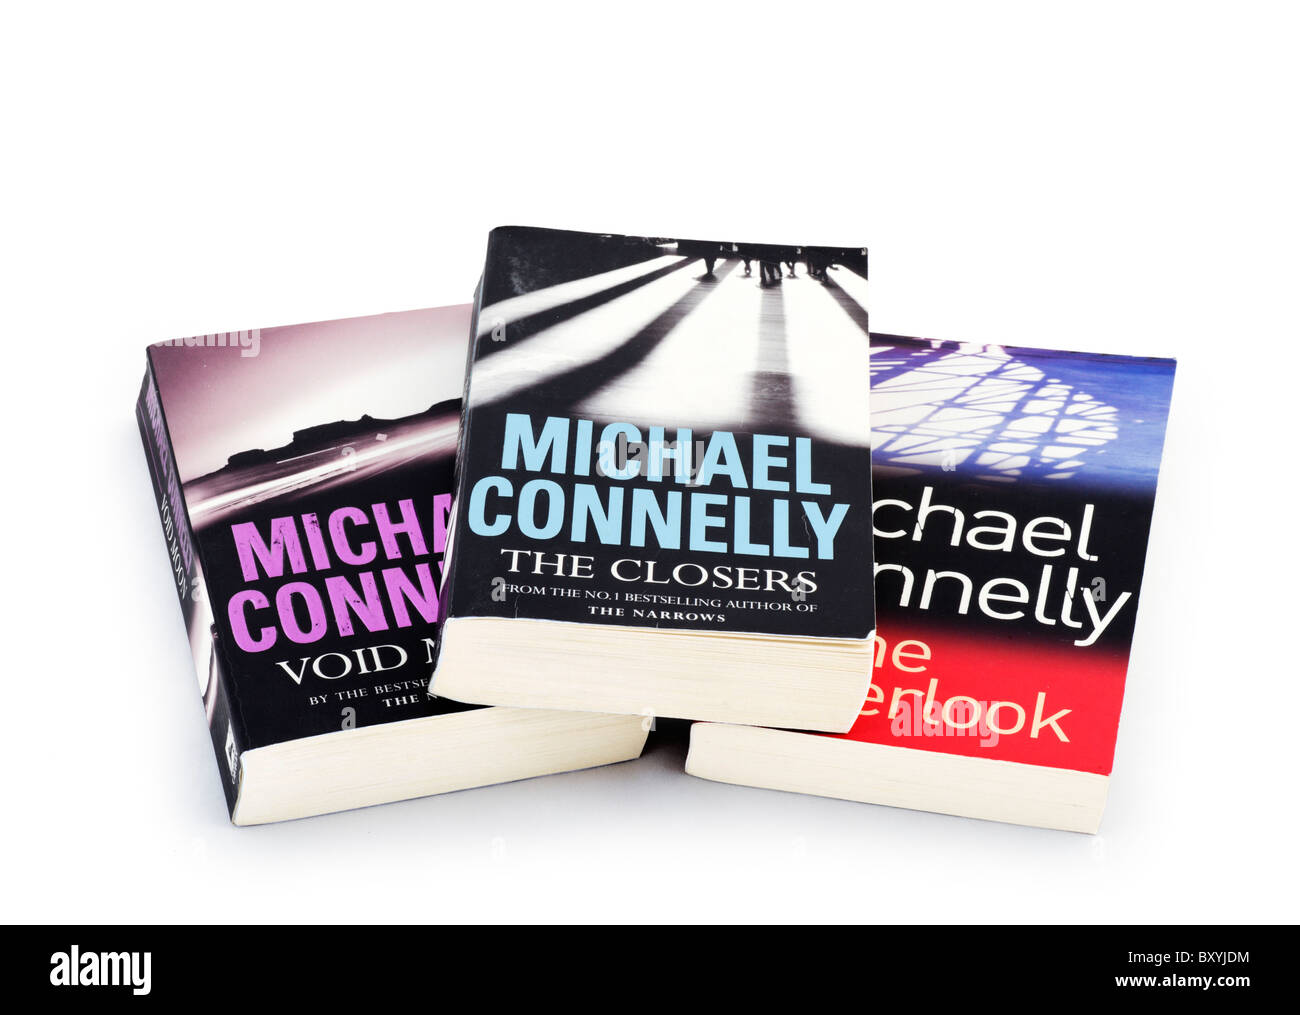 Best selling paperback books by Michael Connelly, UK - Stock Image